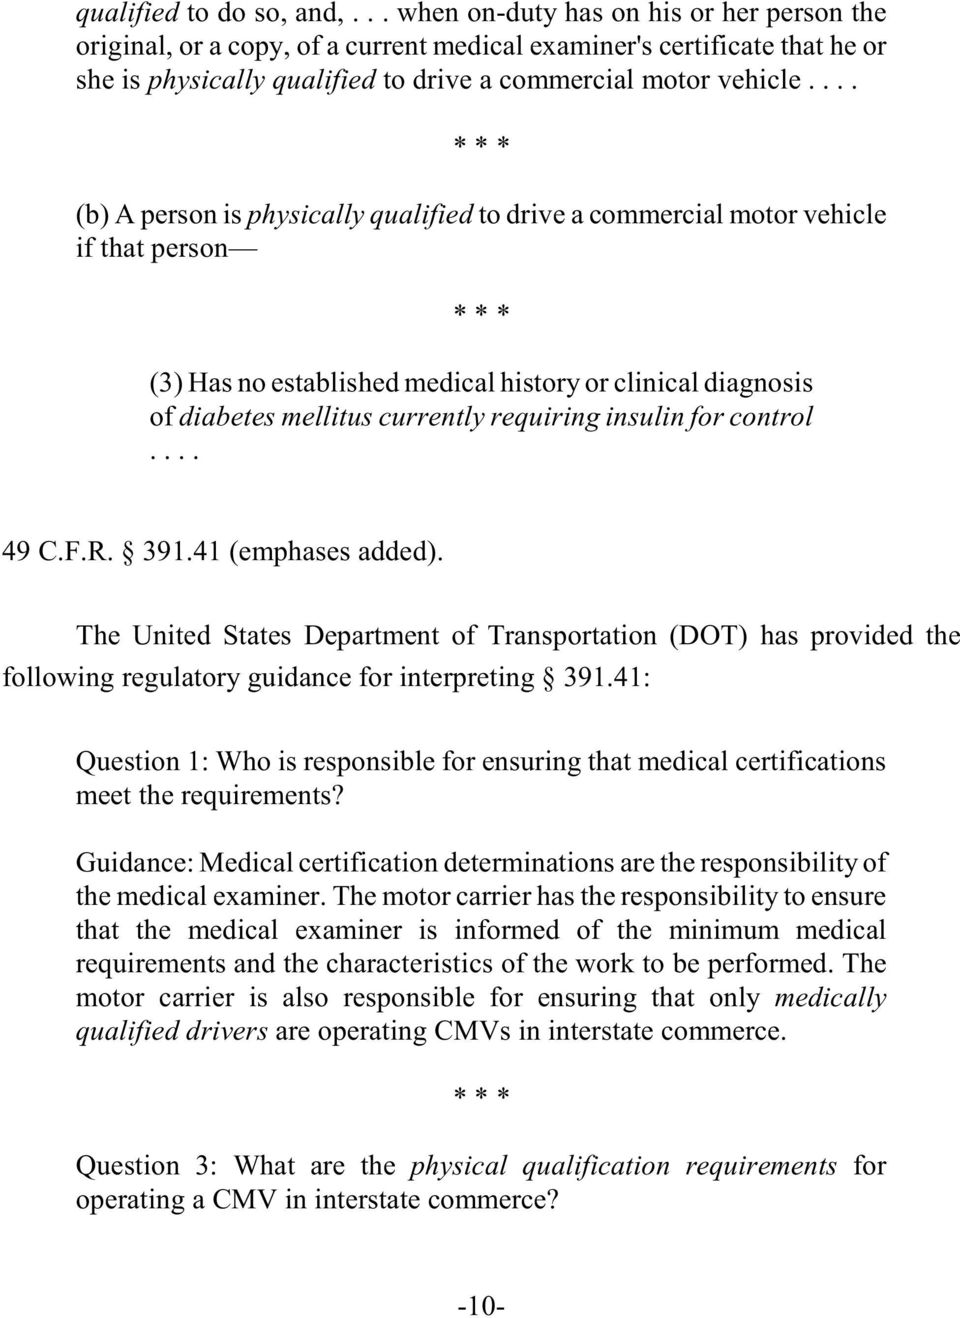 ... * * * (b) A person is physically qualified to drive a commercial motor vehicle if that person * * * (3) Has no established medical history or clinical diagnosis of diabetes mellitus currently